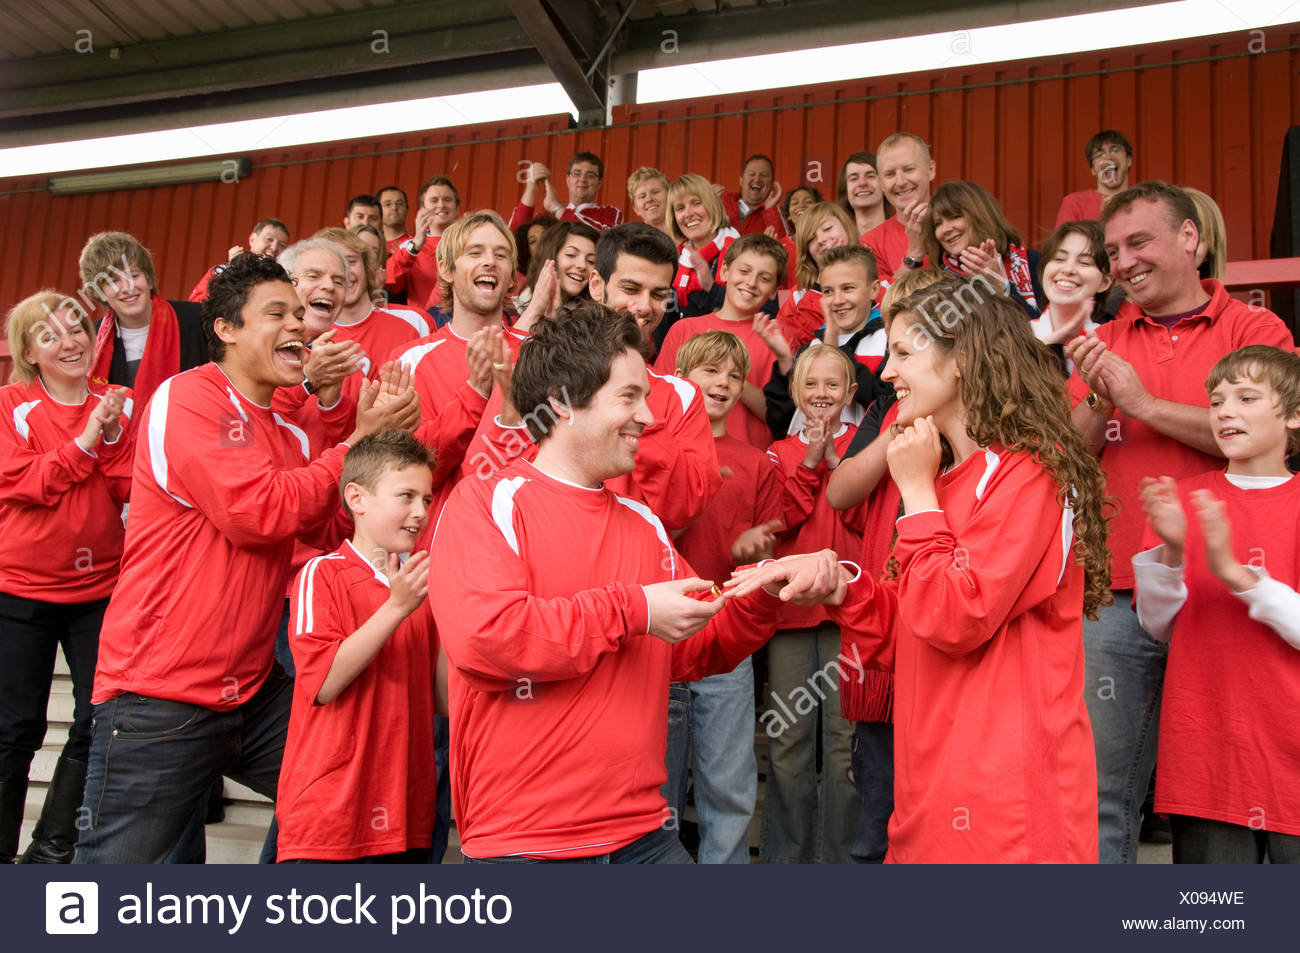 Marriage proposal at football match Stock Photo: 275567306